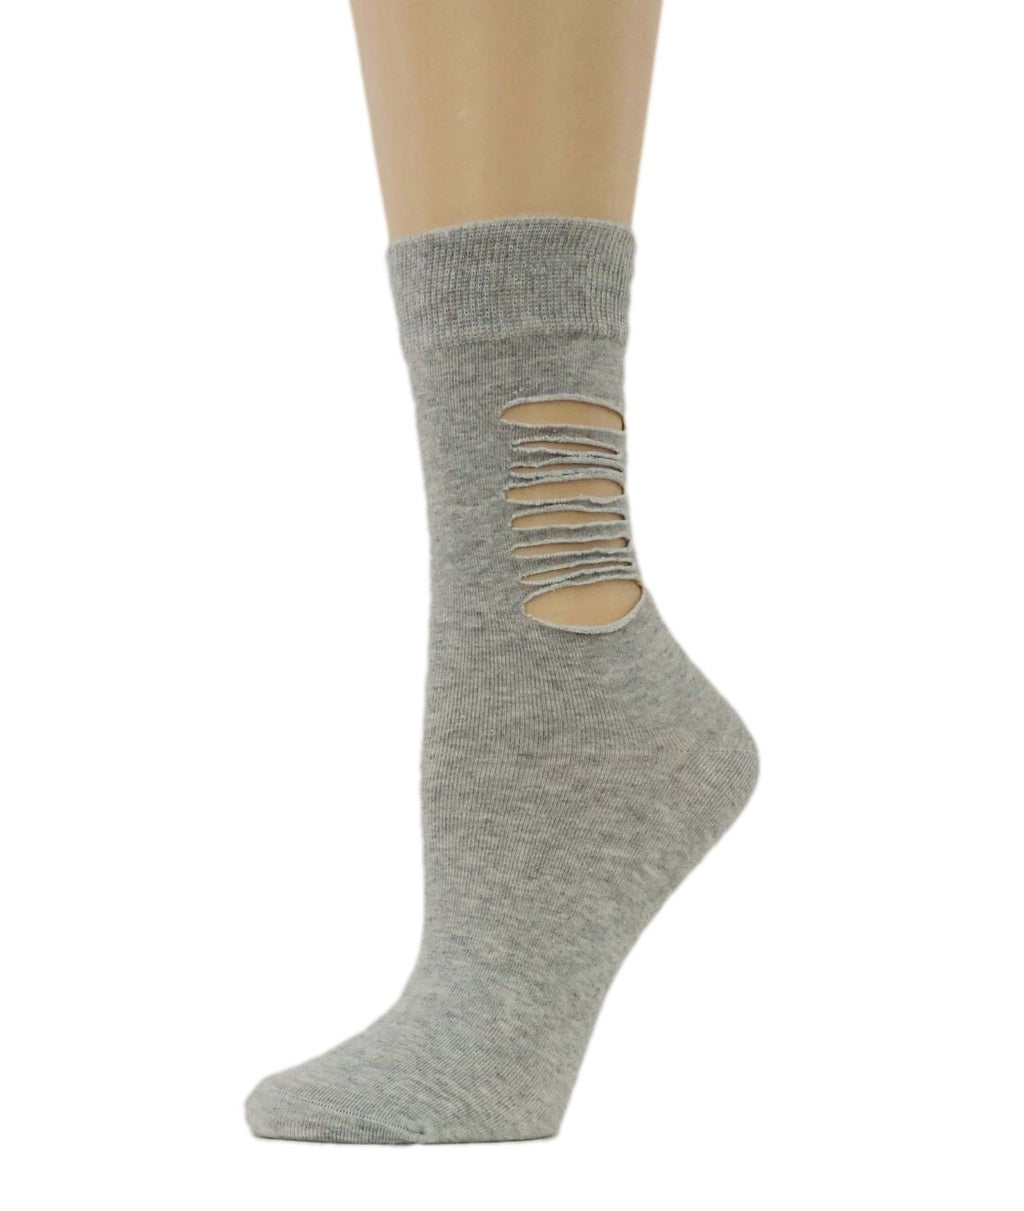 Ripped Grey Cotton Socks